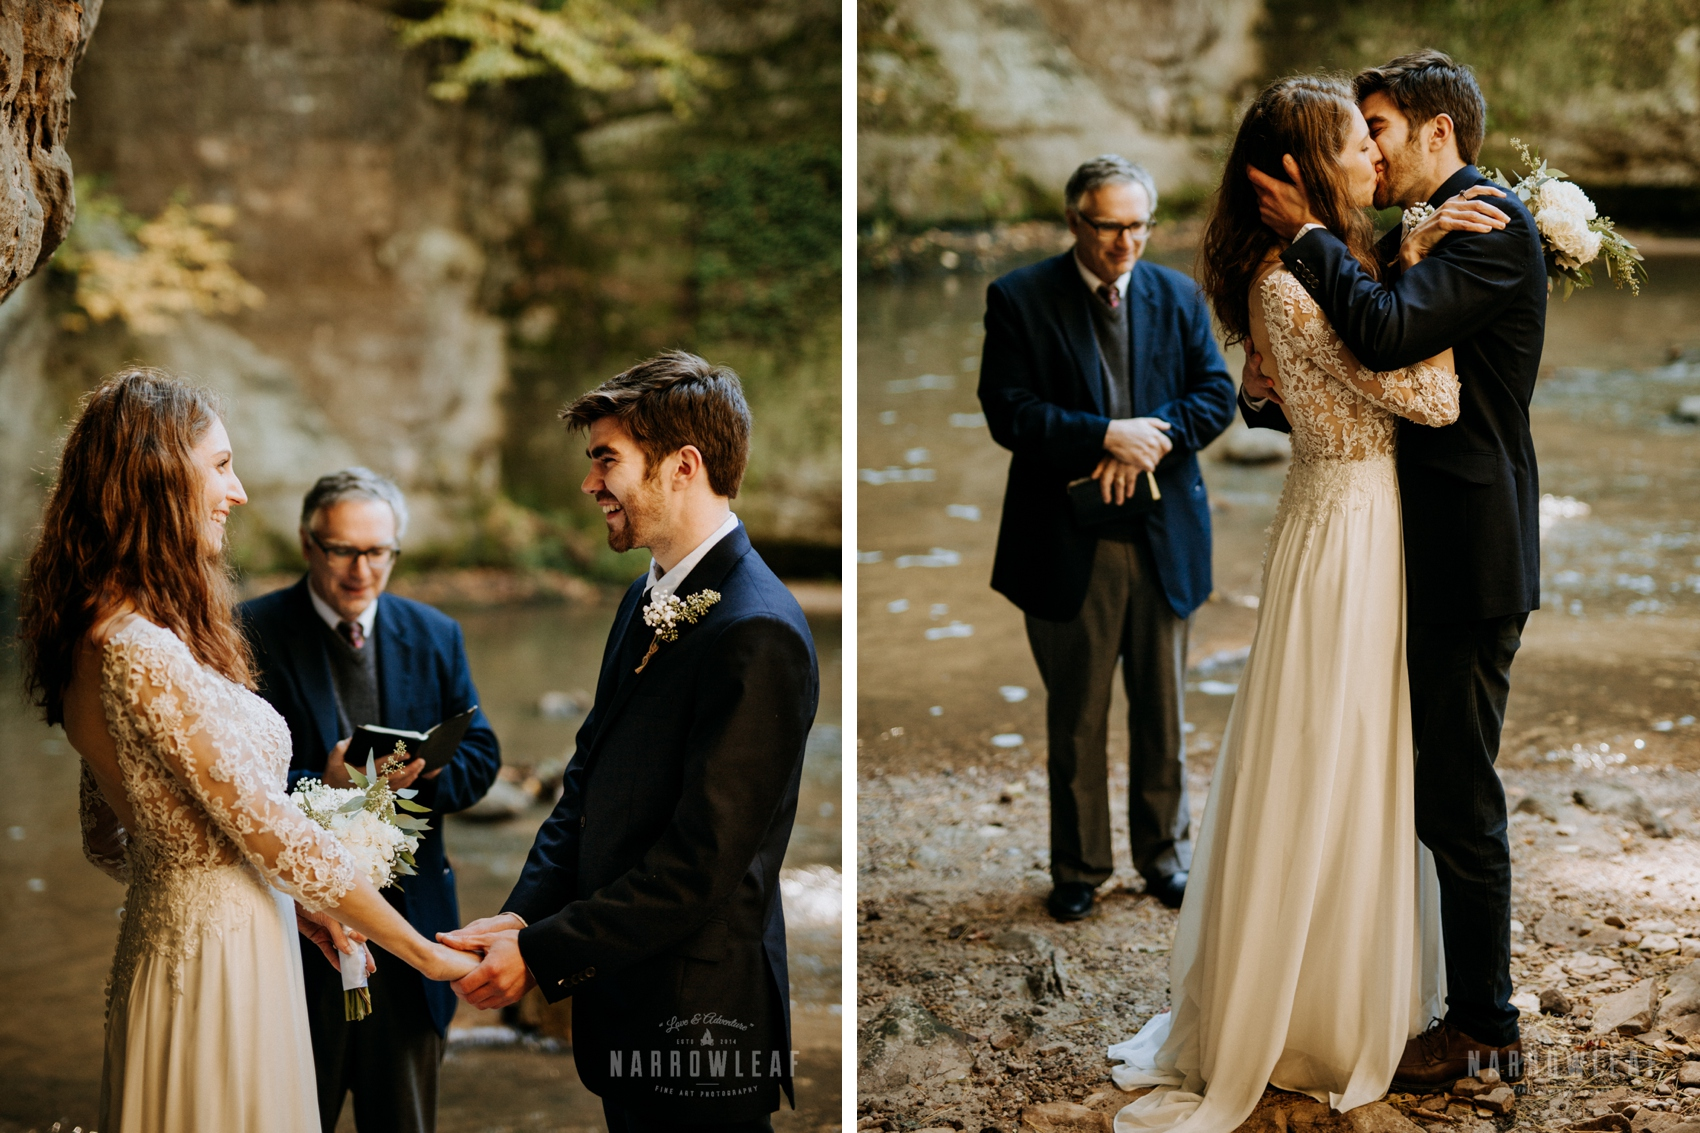 adventure-elopement-pewitts-nest-baraboo-wi-Narrowleaf-photography.jpg